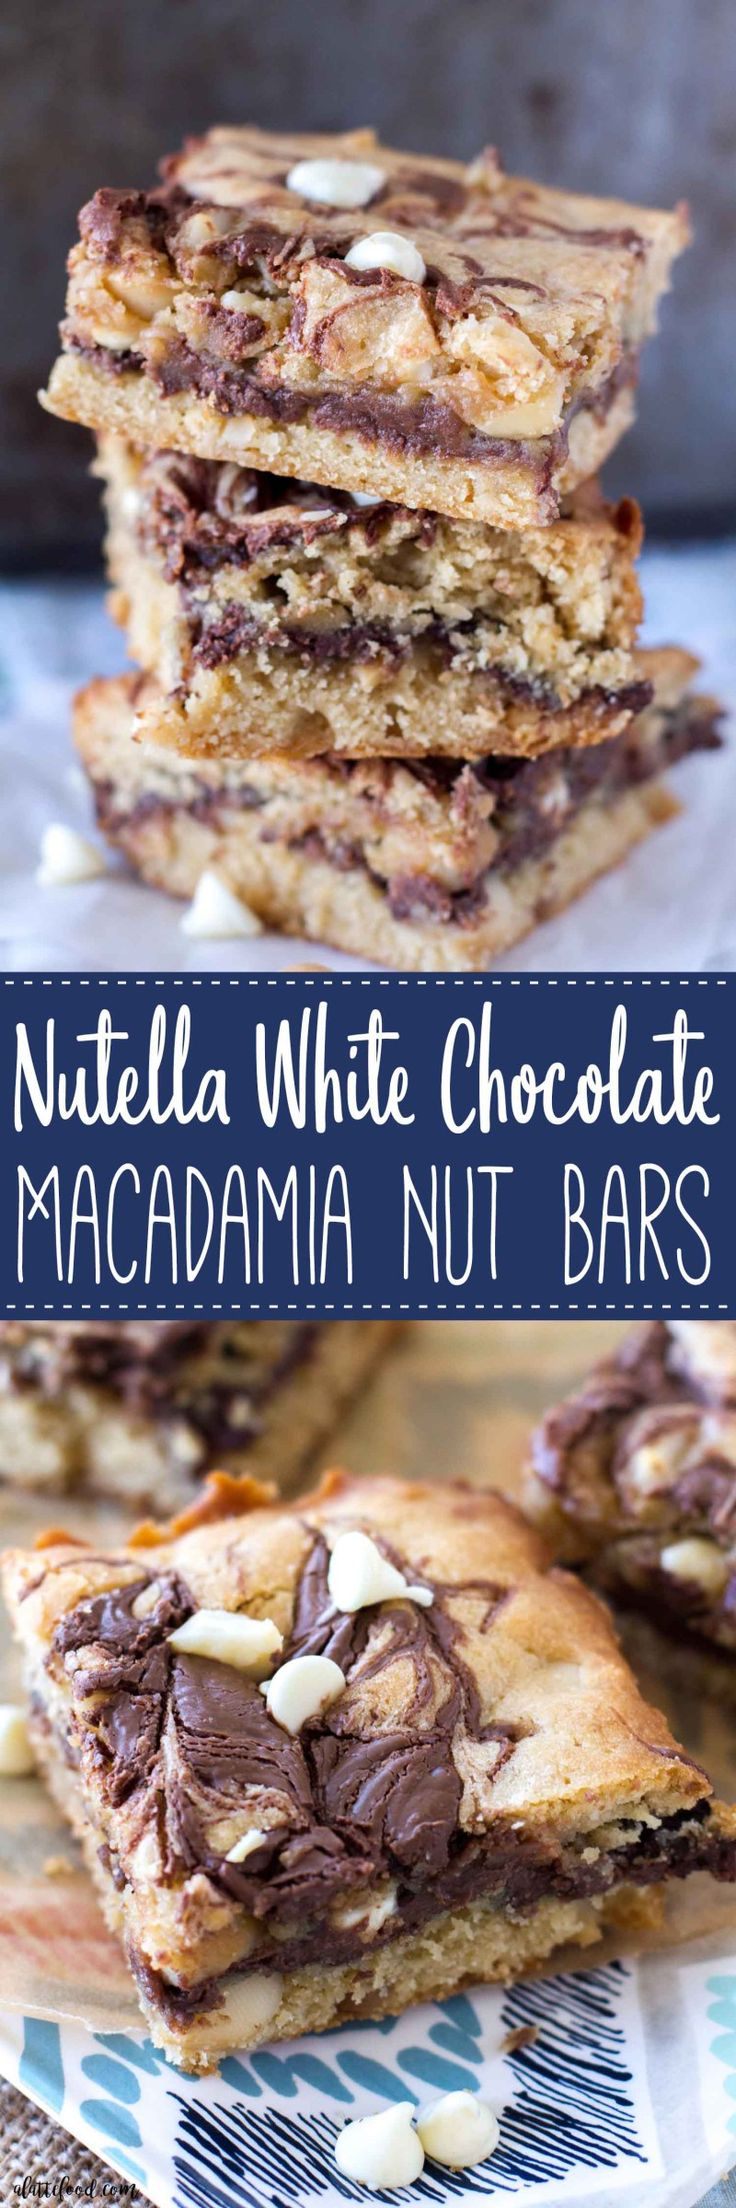 Nutella White Chocolate Macadamia Nut Bars  | Posted By: DebbieNet.com